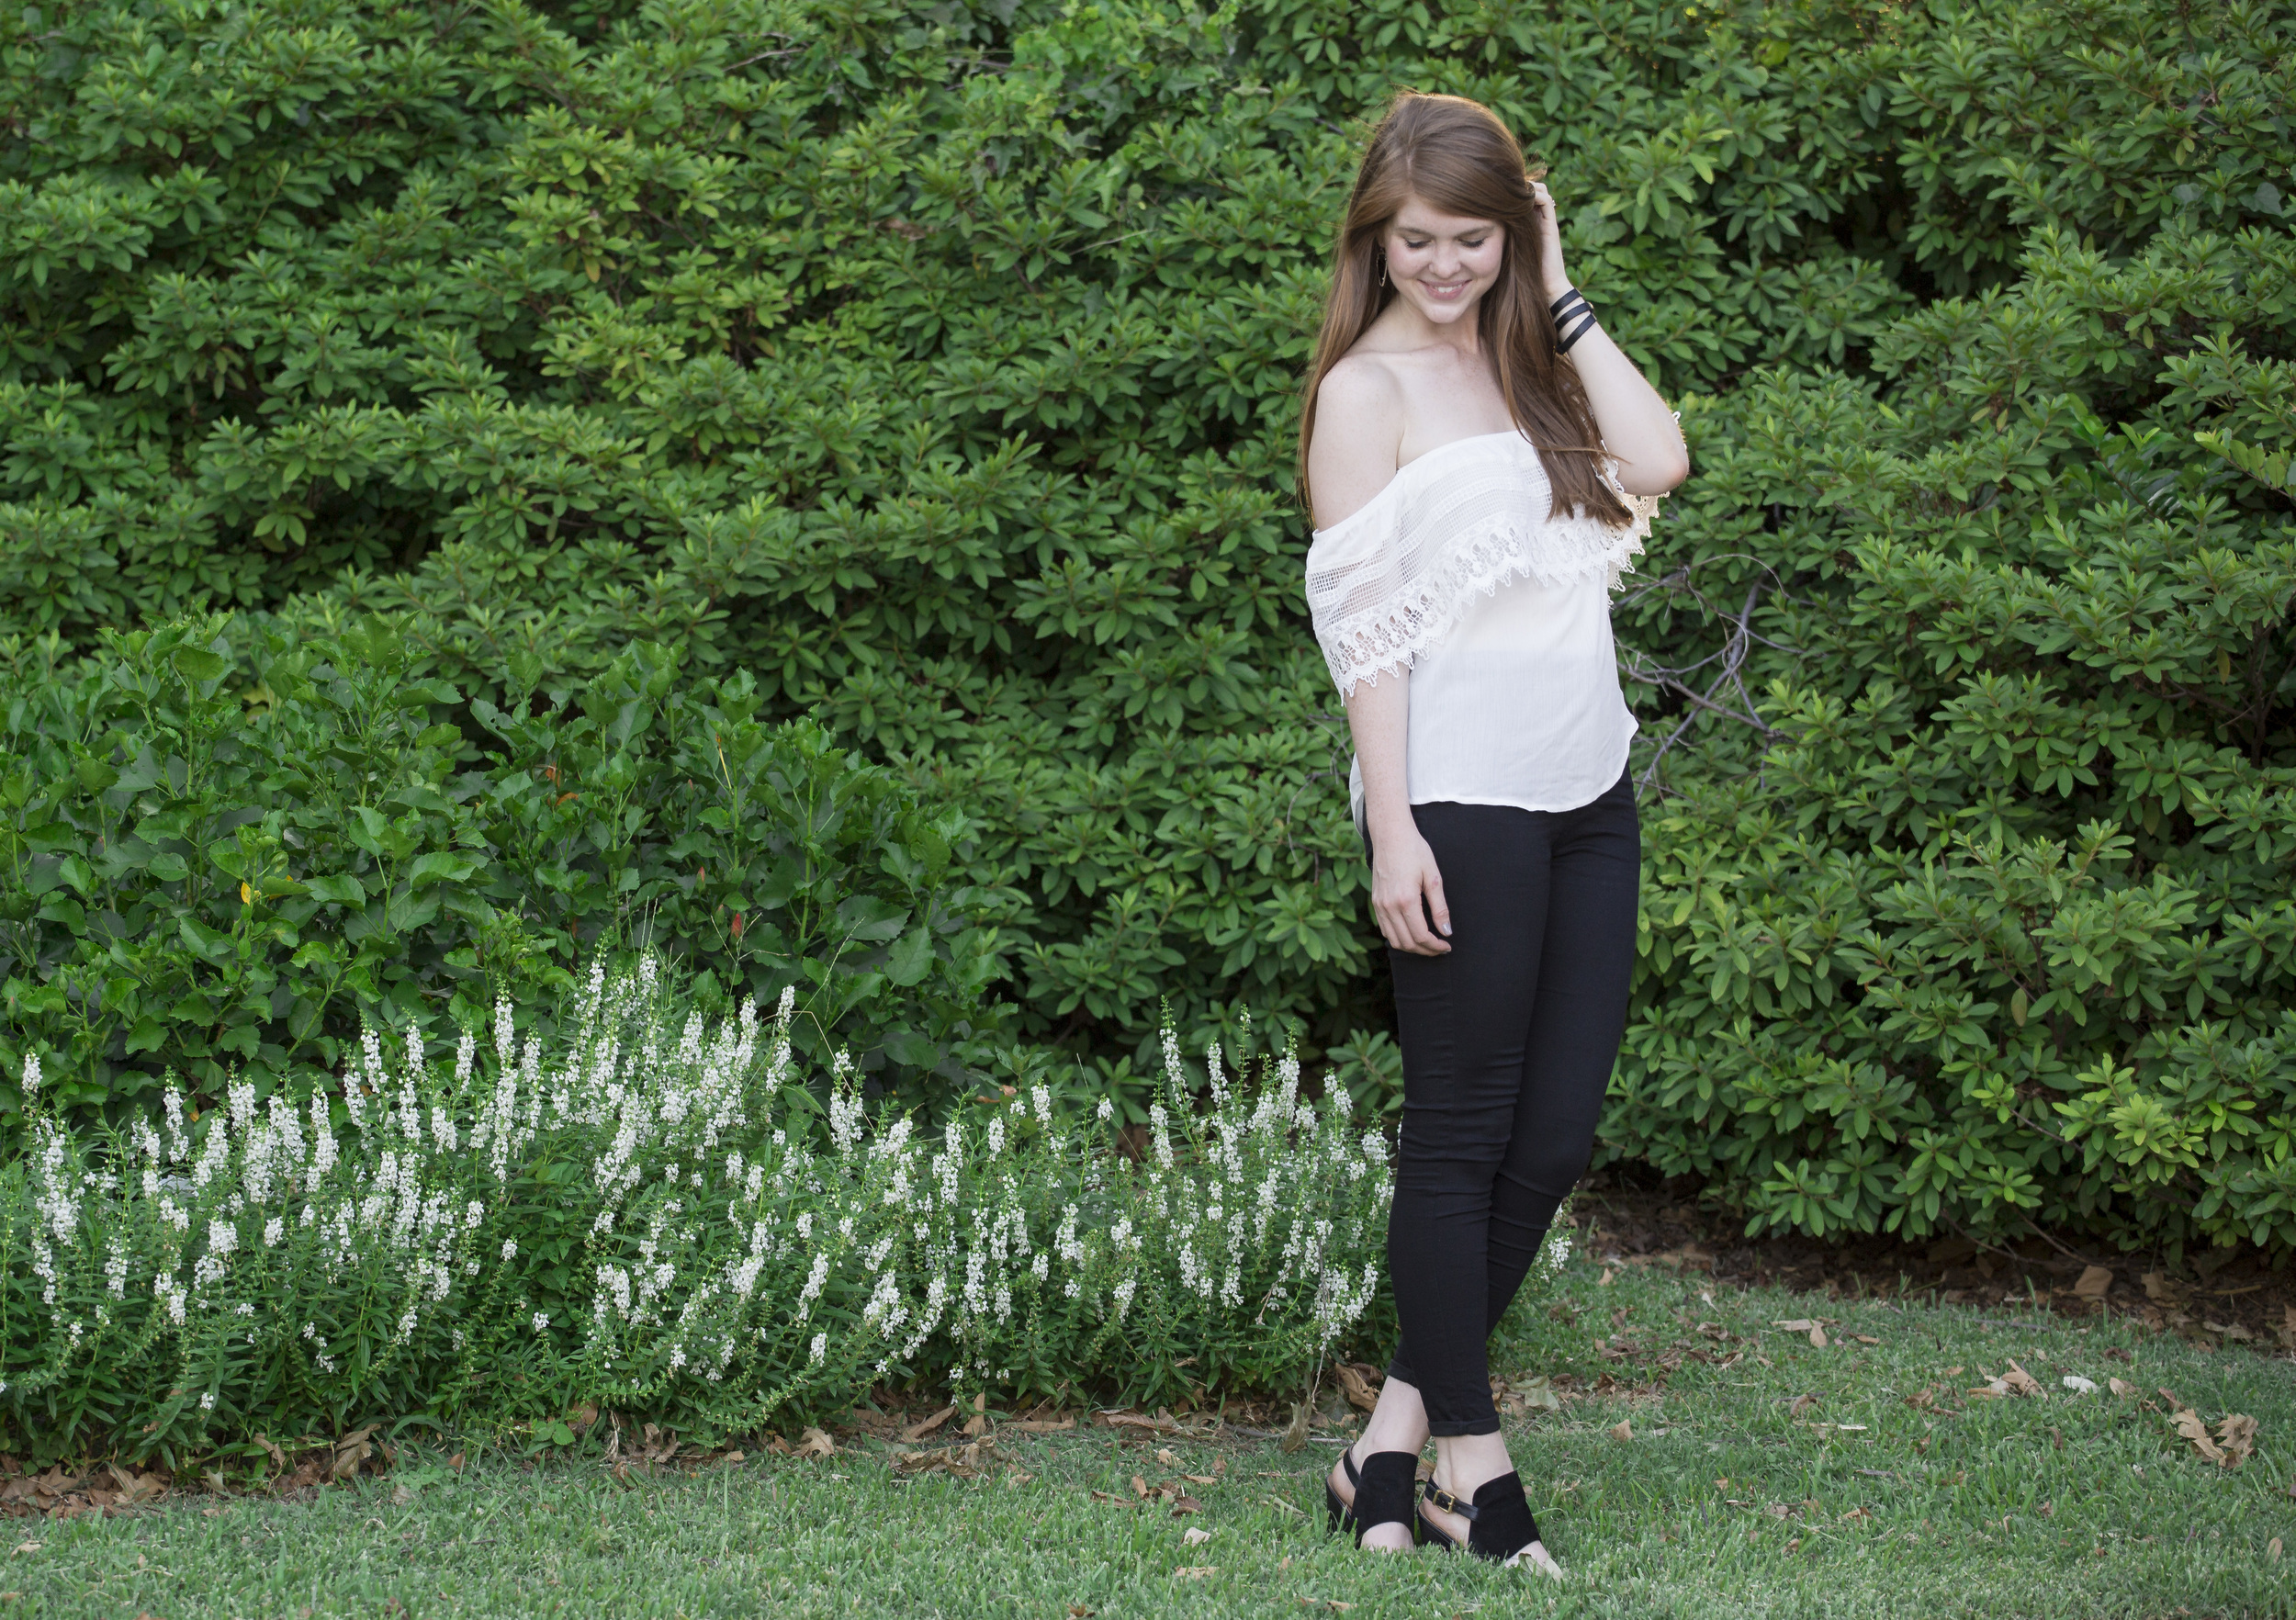 sarah kelly photography, Socialite Crochet Off the Shoulder Top, topshop black skinny jeans, black wedge sandals, kendra scott skylar earrings, arlington hall at lee park, dallas photographer, nordstrom, 25th birthday